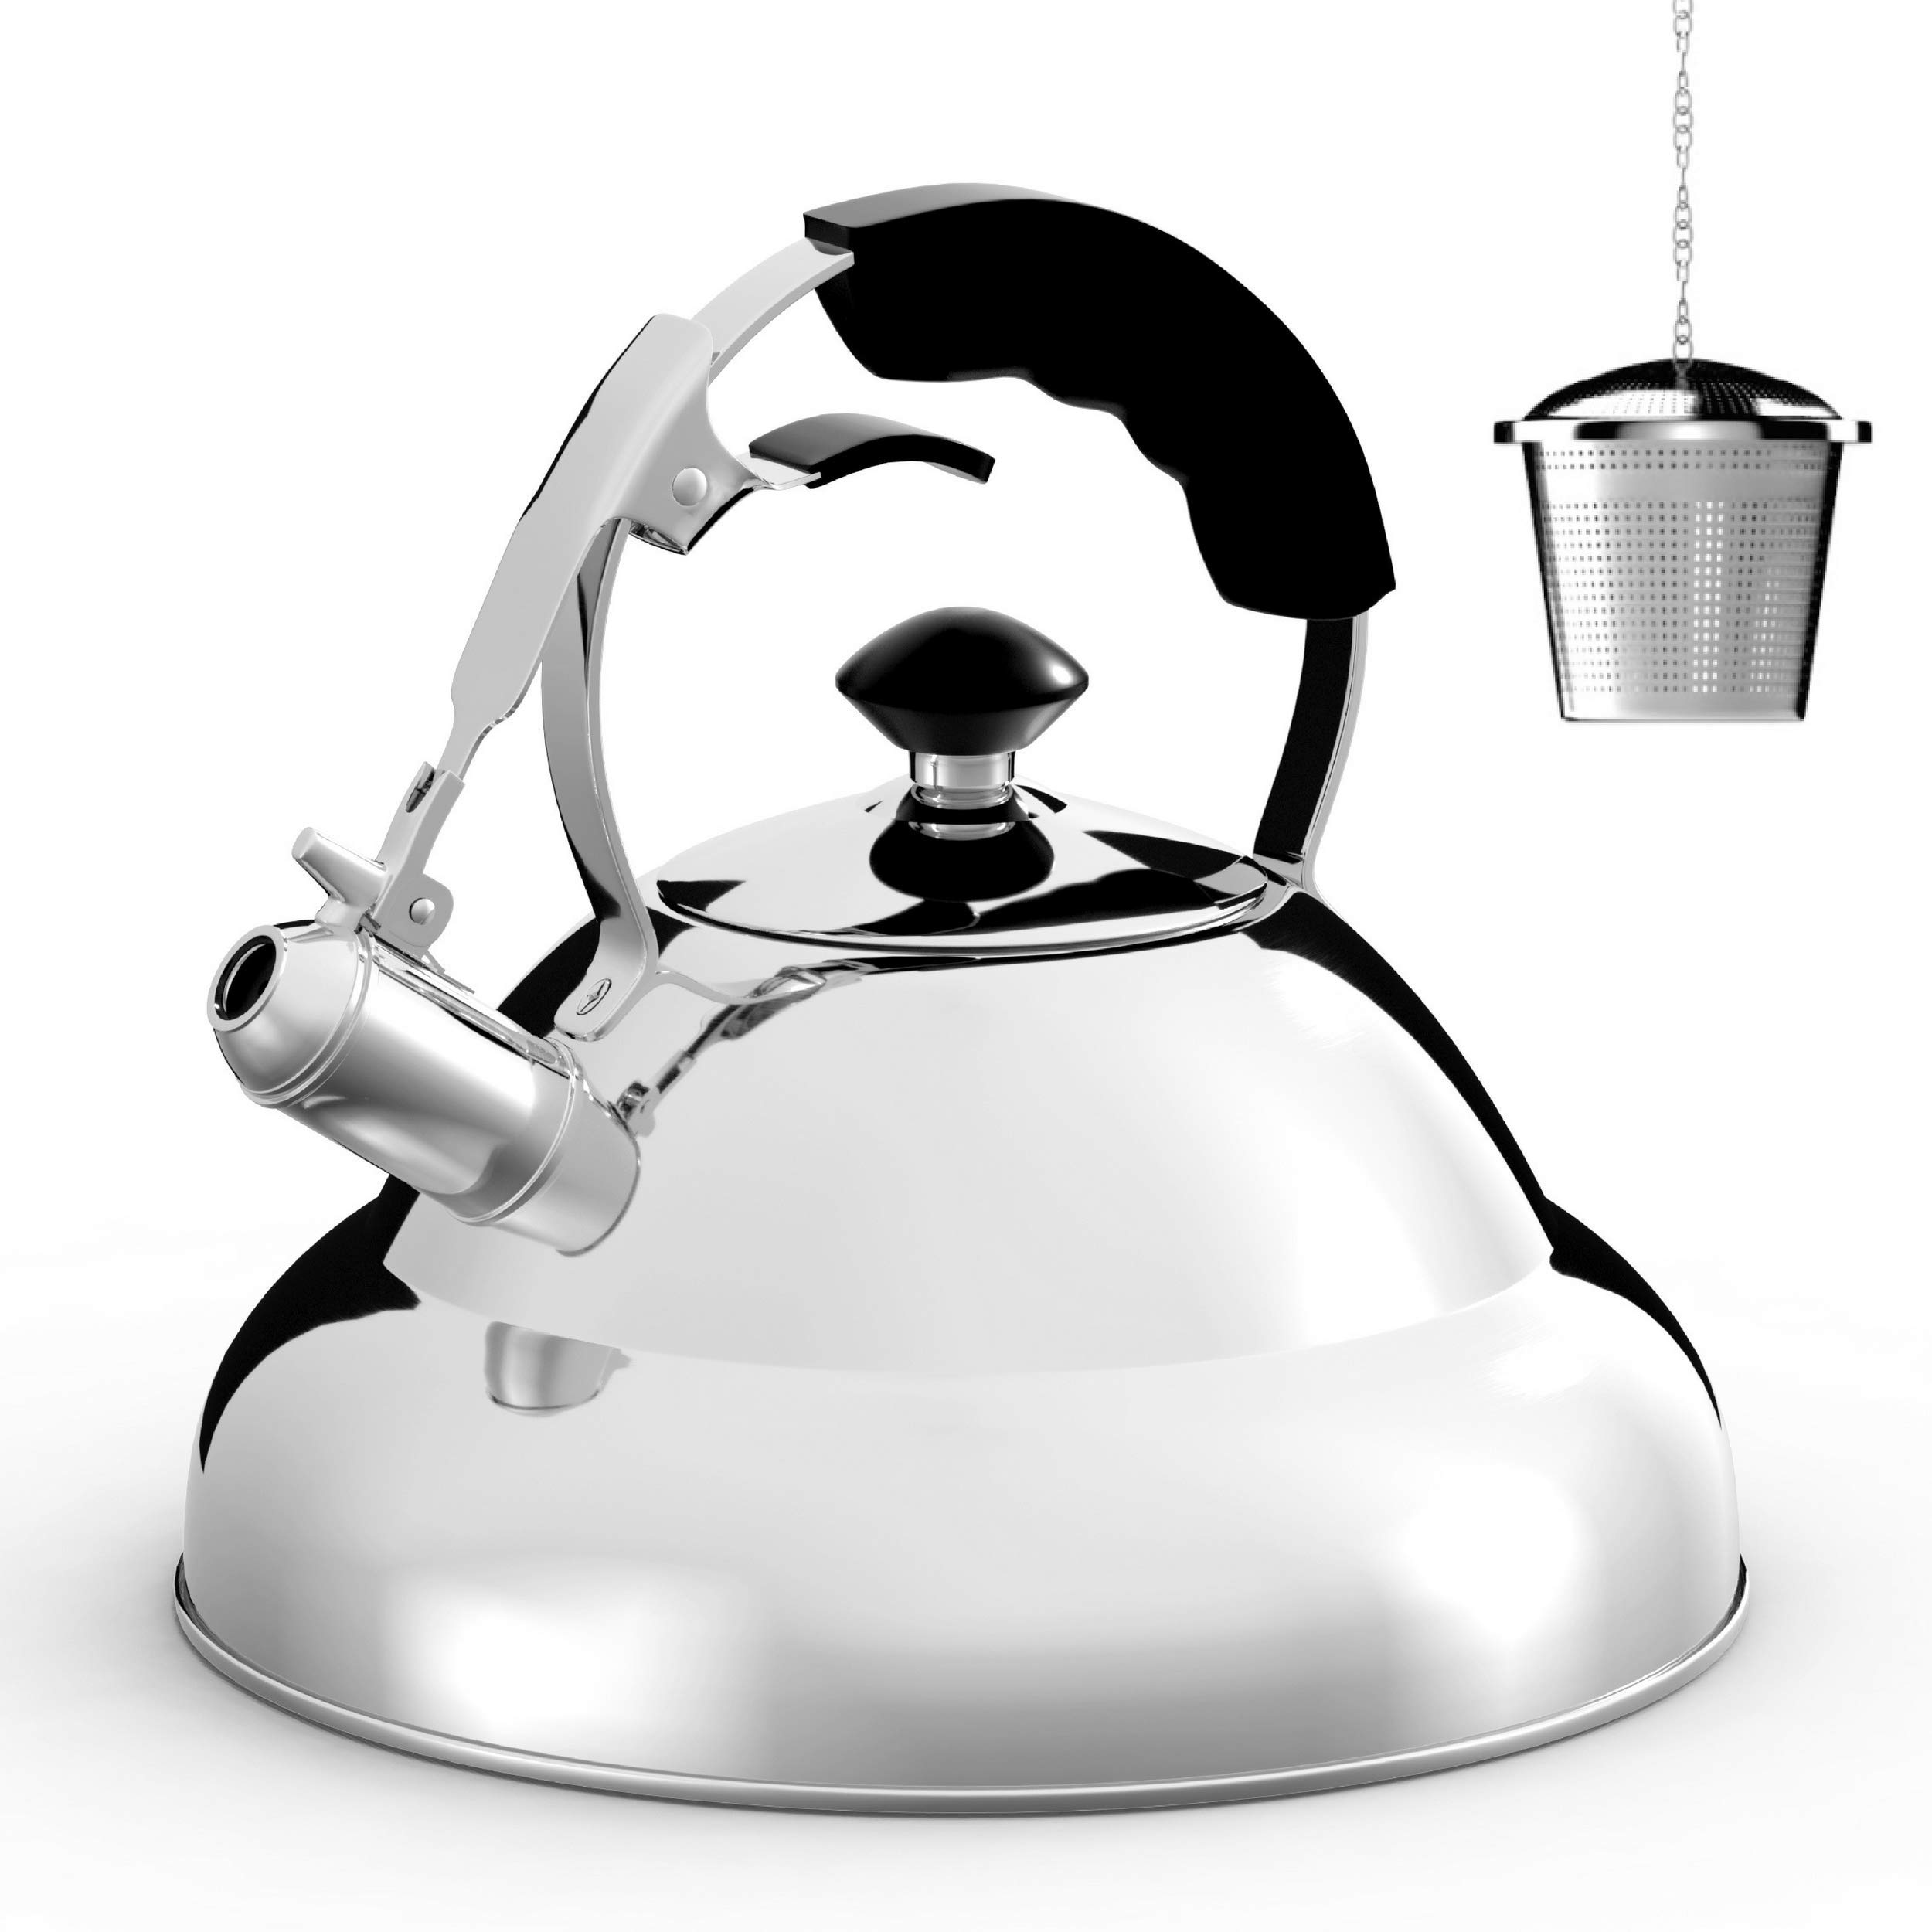 Tea Kettle - Stainless Steel Whistling Teapot with Capsule Bottom and Mirror Finish, 2.75 Quart Tea Pot - Stove Top Tea Maker Infuser Teapots Strainer Included (Single Handle) by Willow & Everett